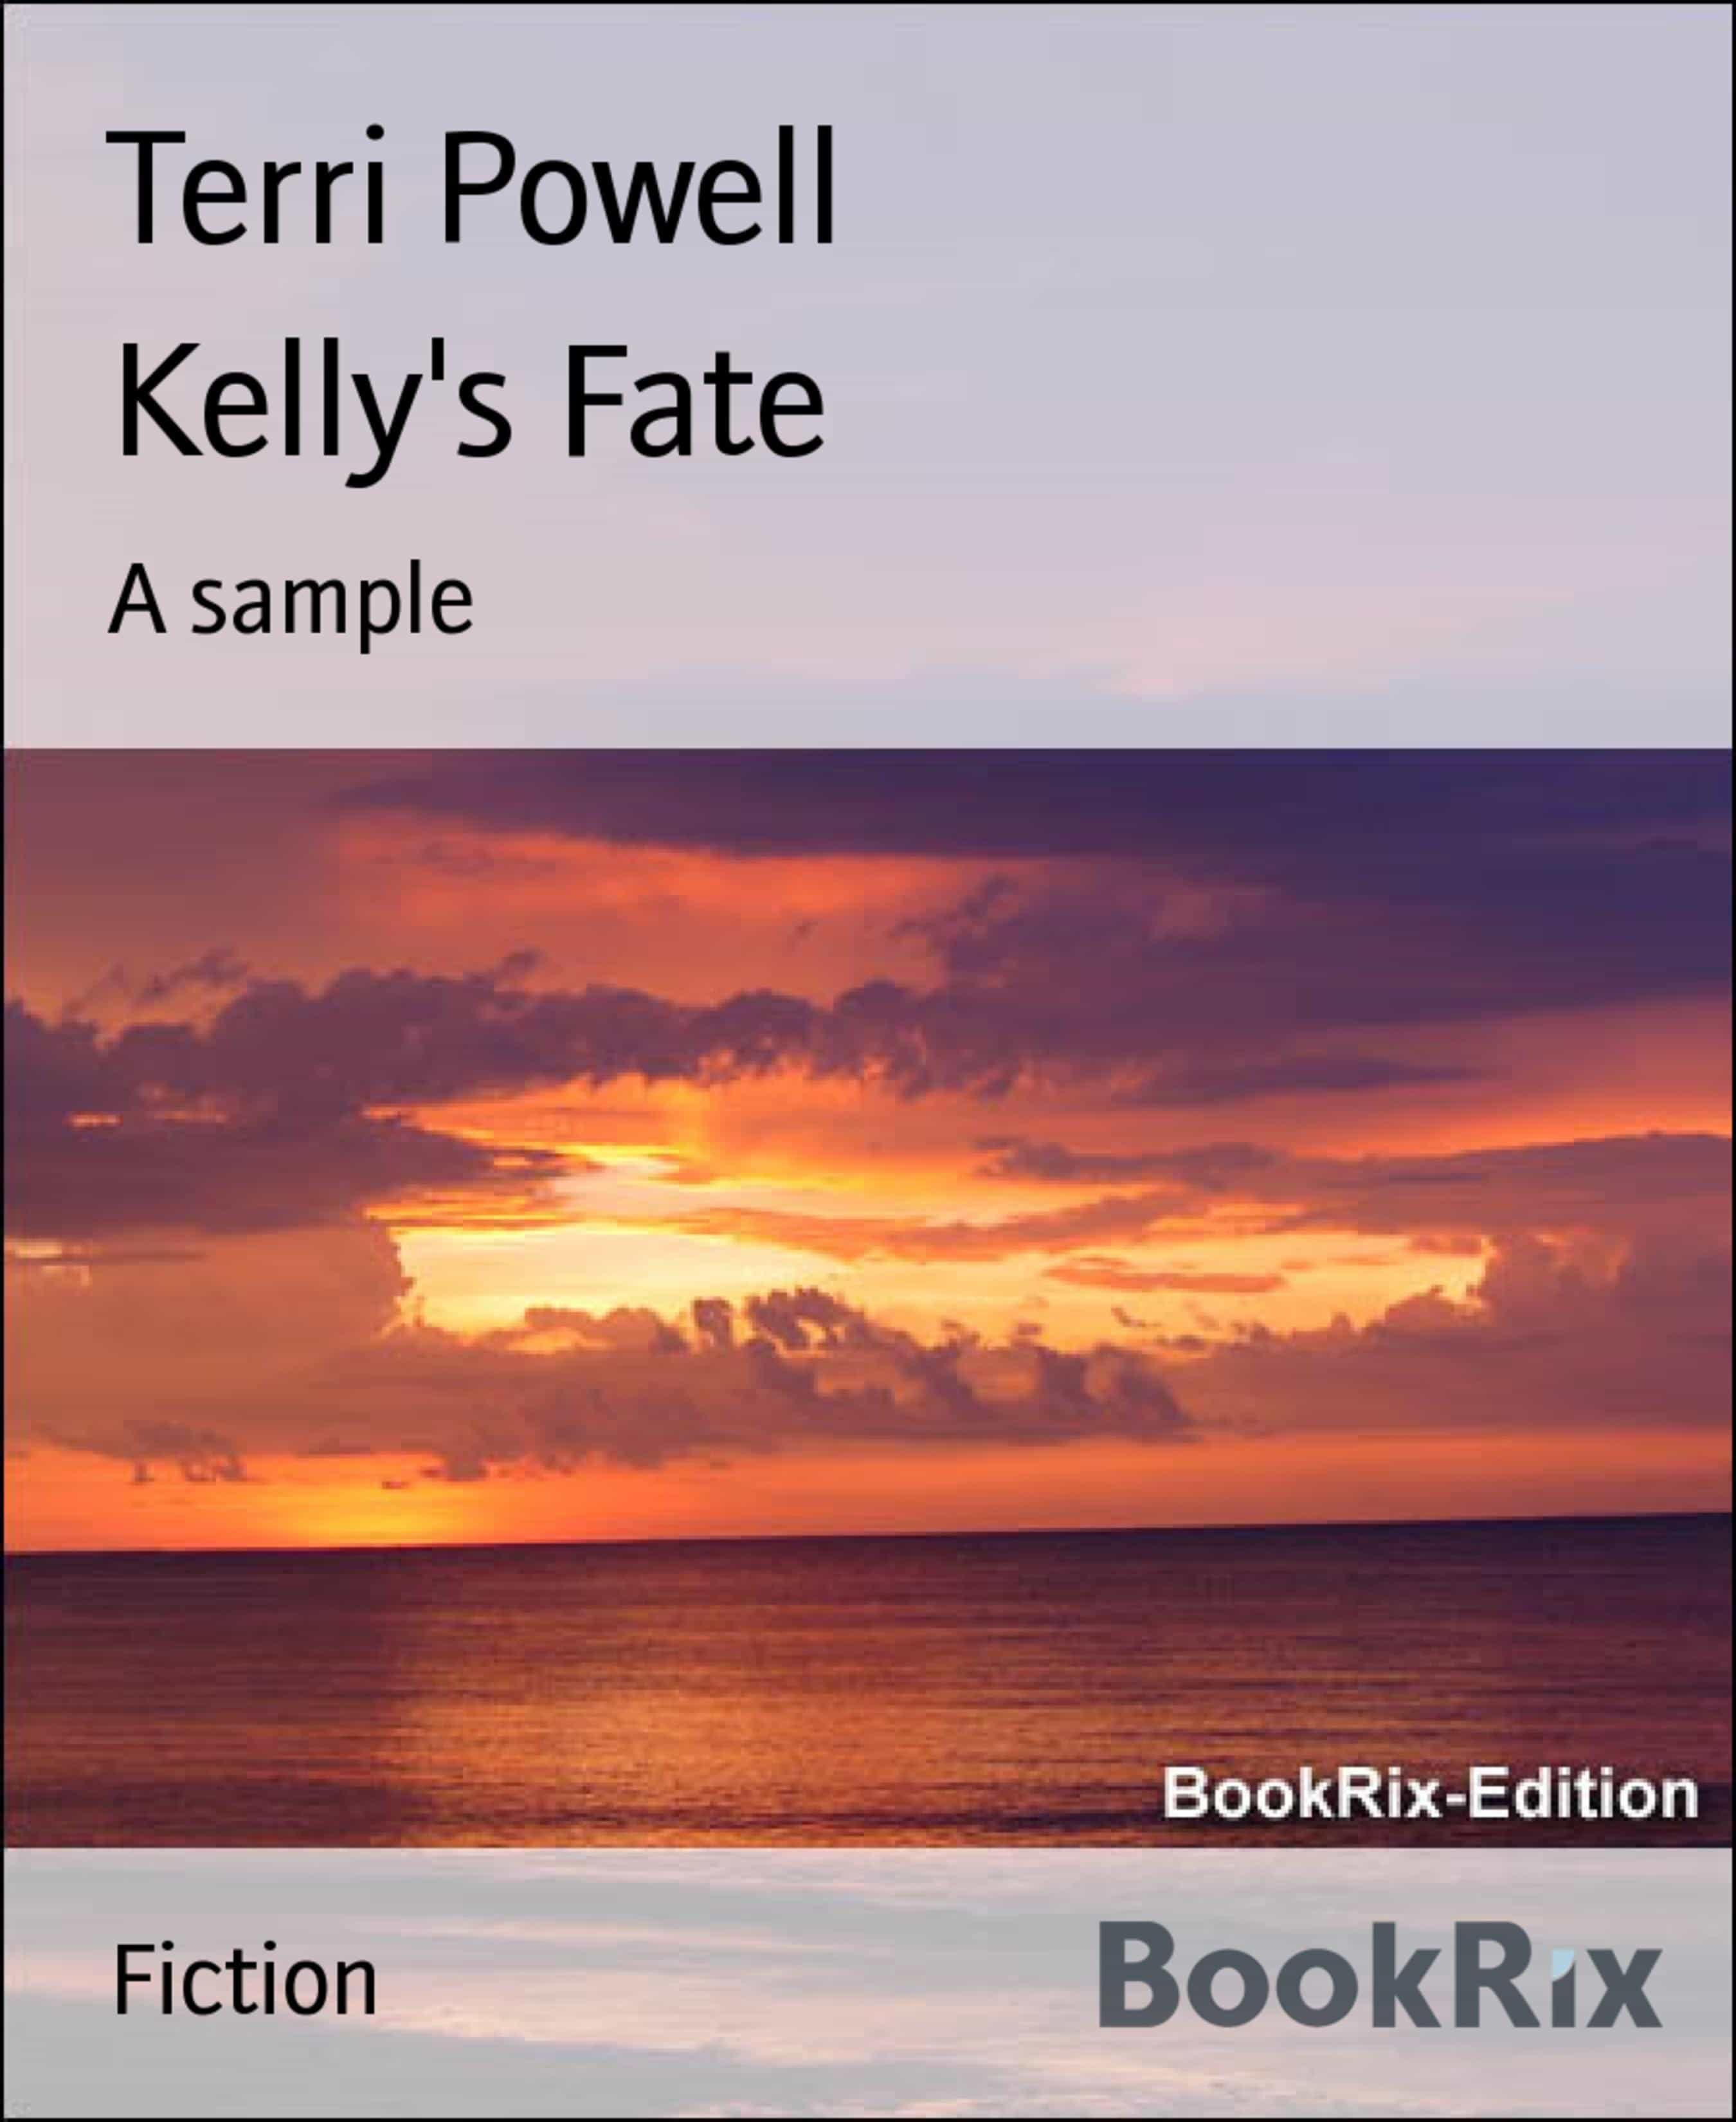 KELLY'S FATE